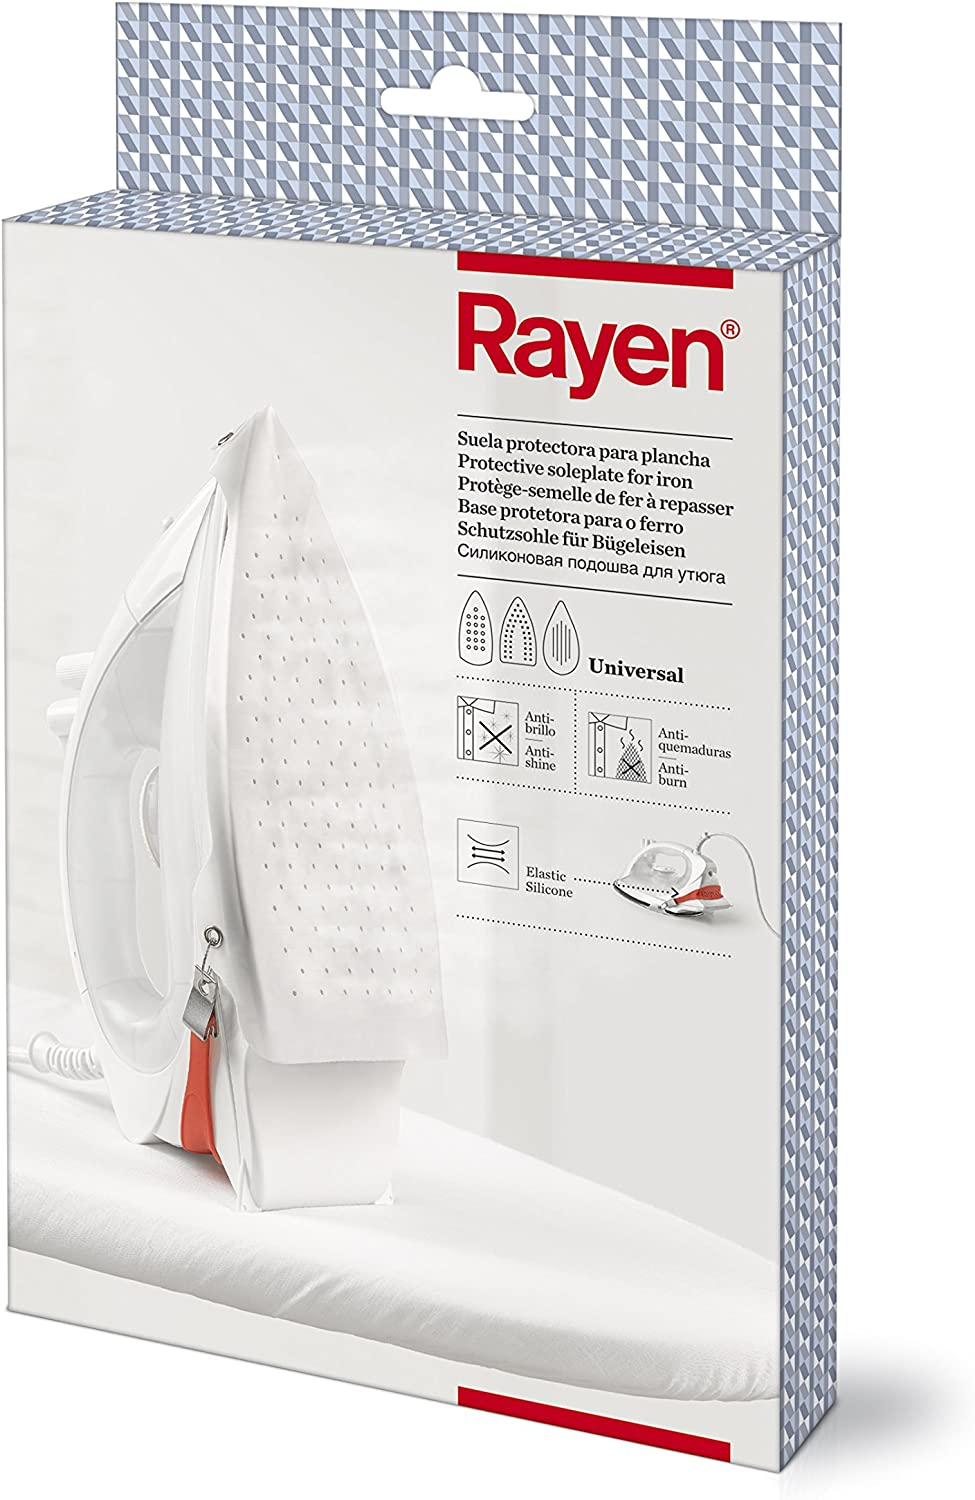 Rayen 6205 Iron Soleplate Suitable for All Steam Irons with Silicone Fastening